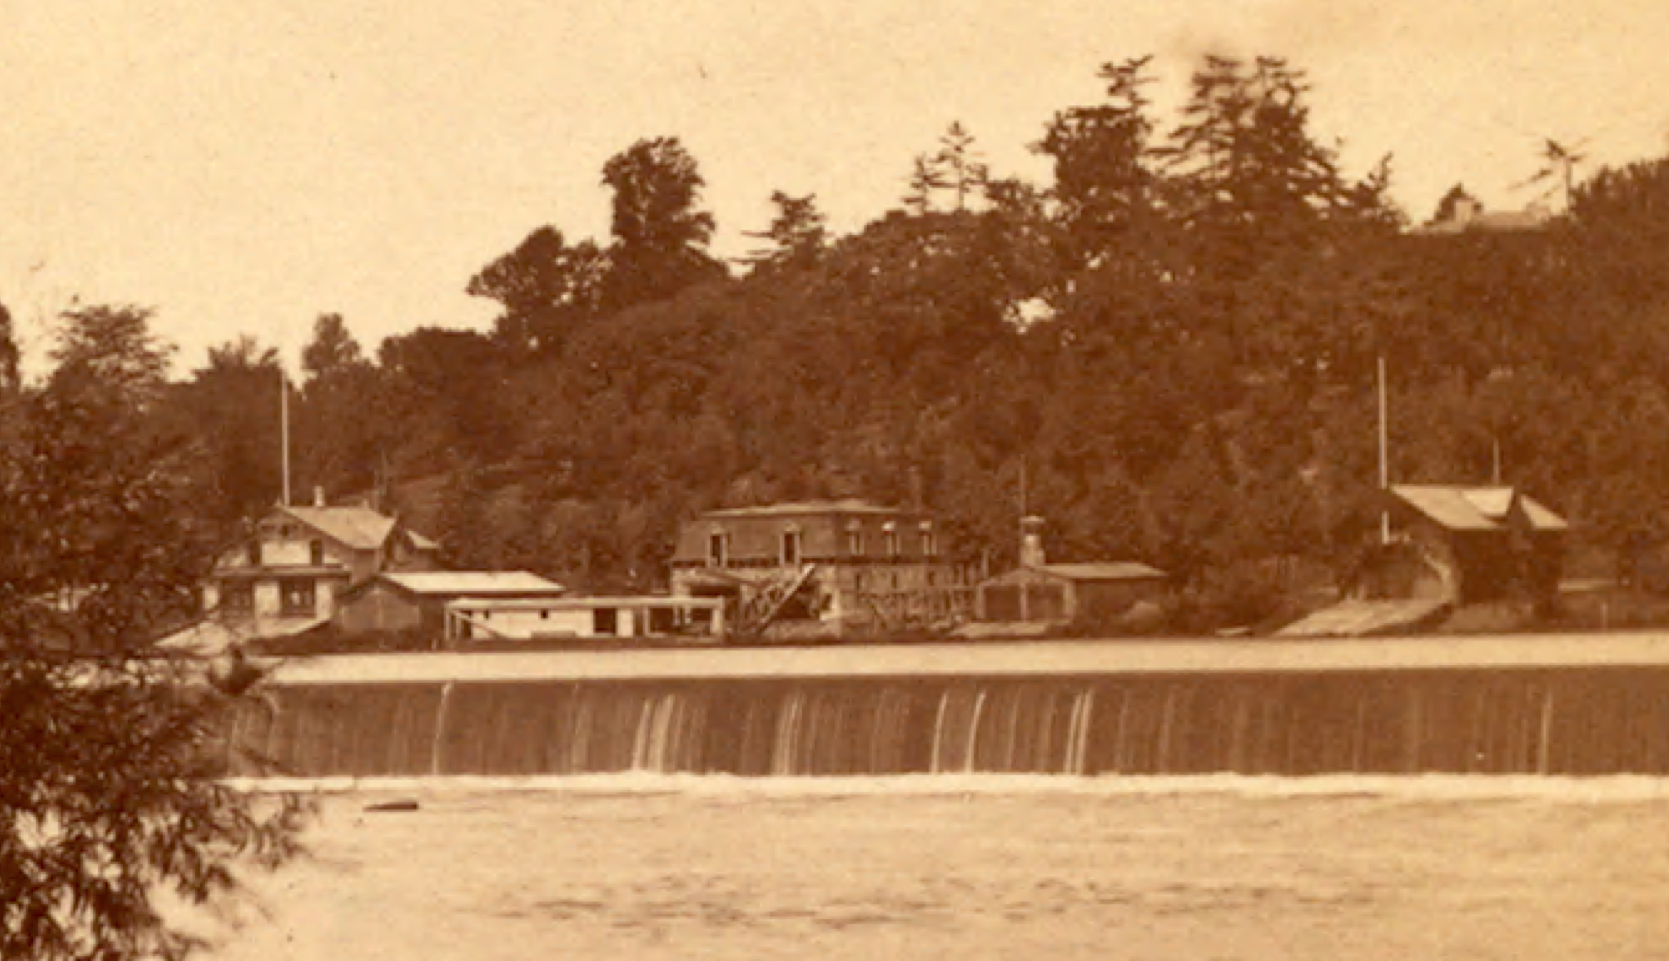 Fairmount Dam by James Cremer (1821-1893) (image from Wikimedia Commons)